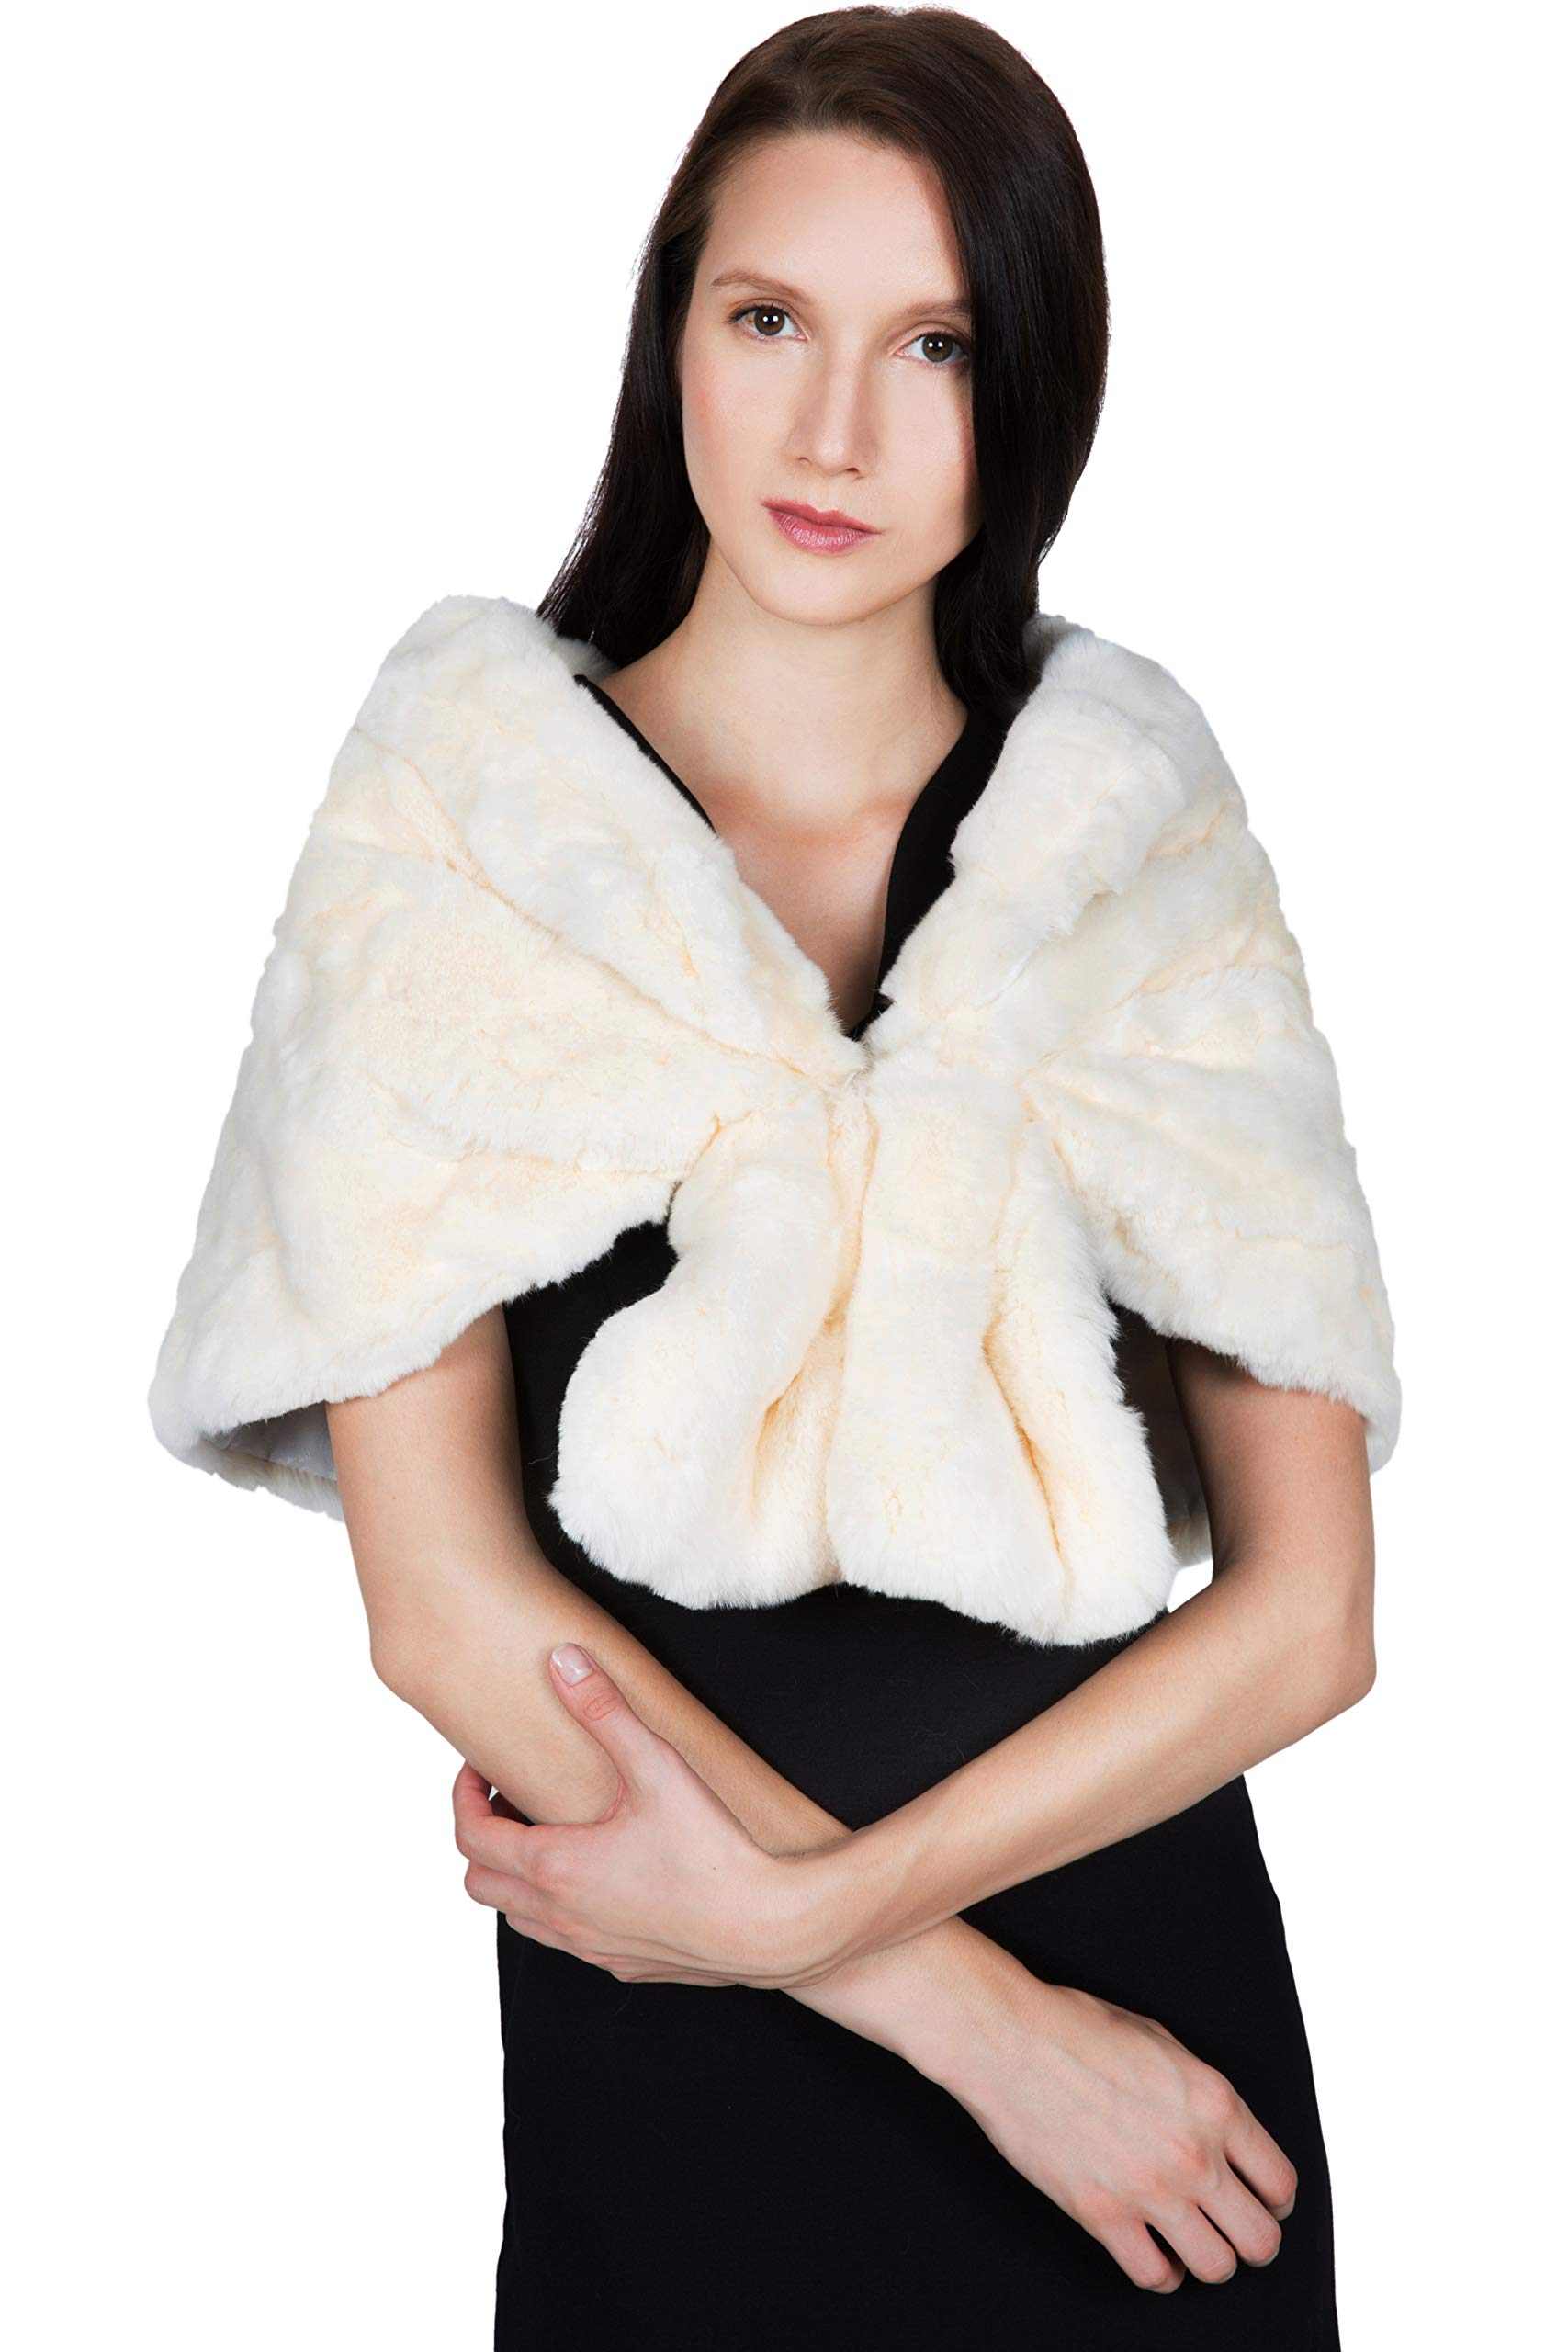 OBURLA Women's Rex Rabbit Fur Cape with Collar | Soft and Luxurious Real Fur Shawl Wrap Stole (Beige) by OBURLA (Image #5)